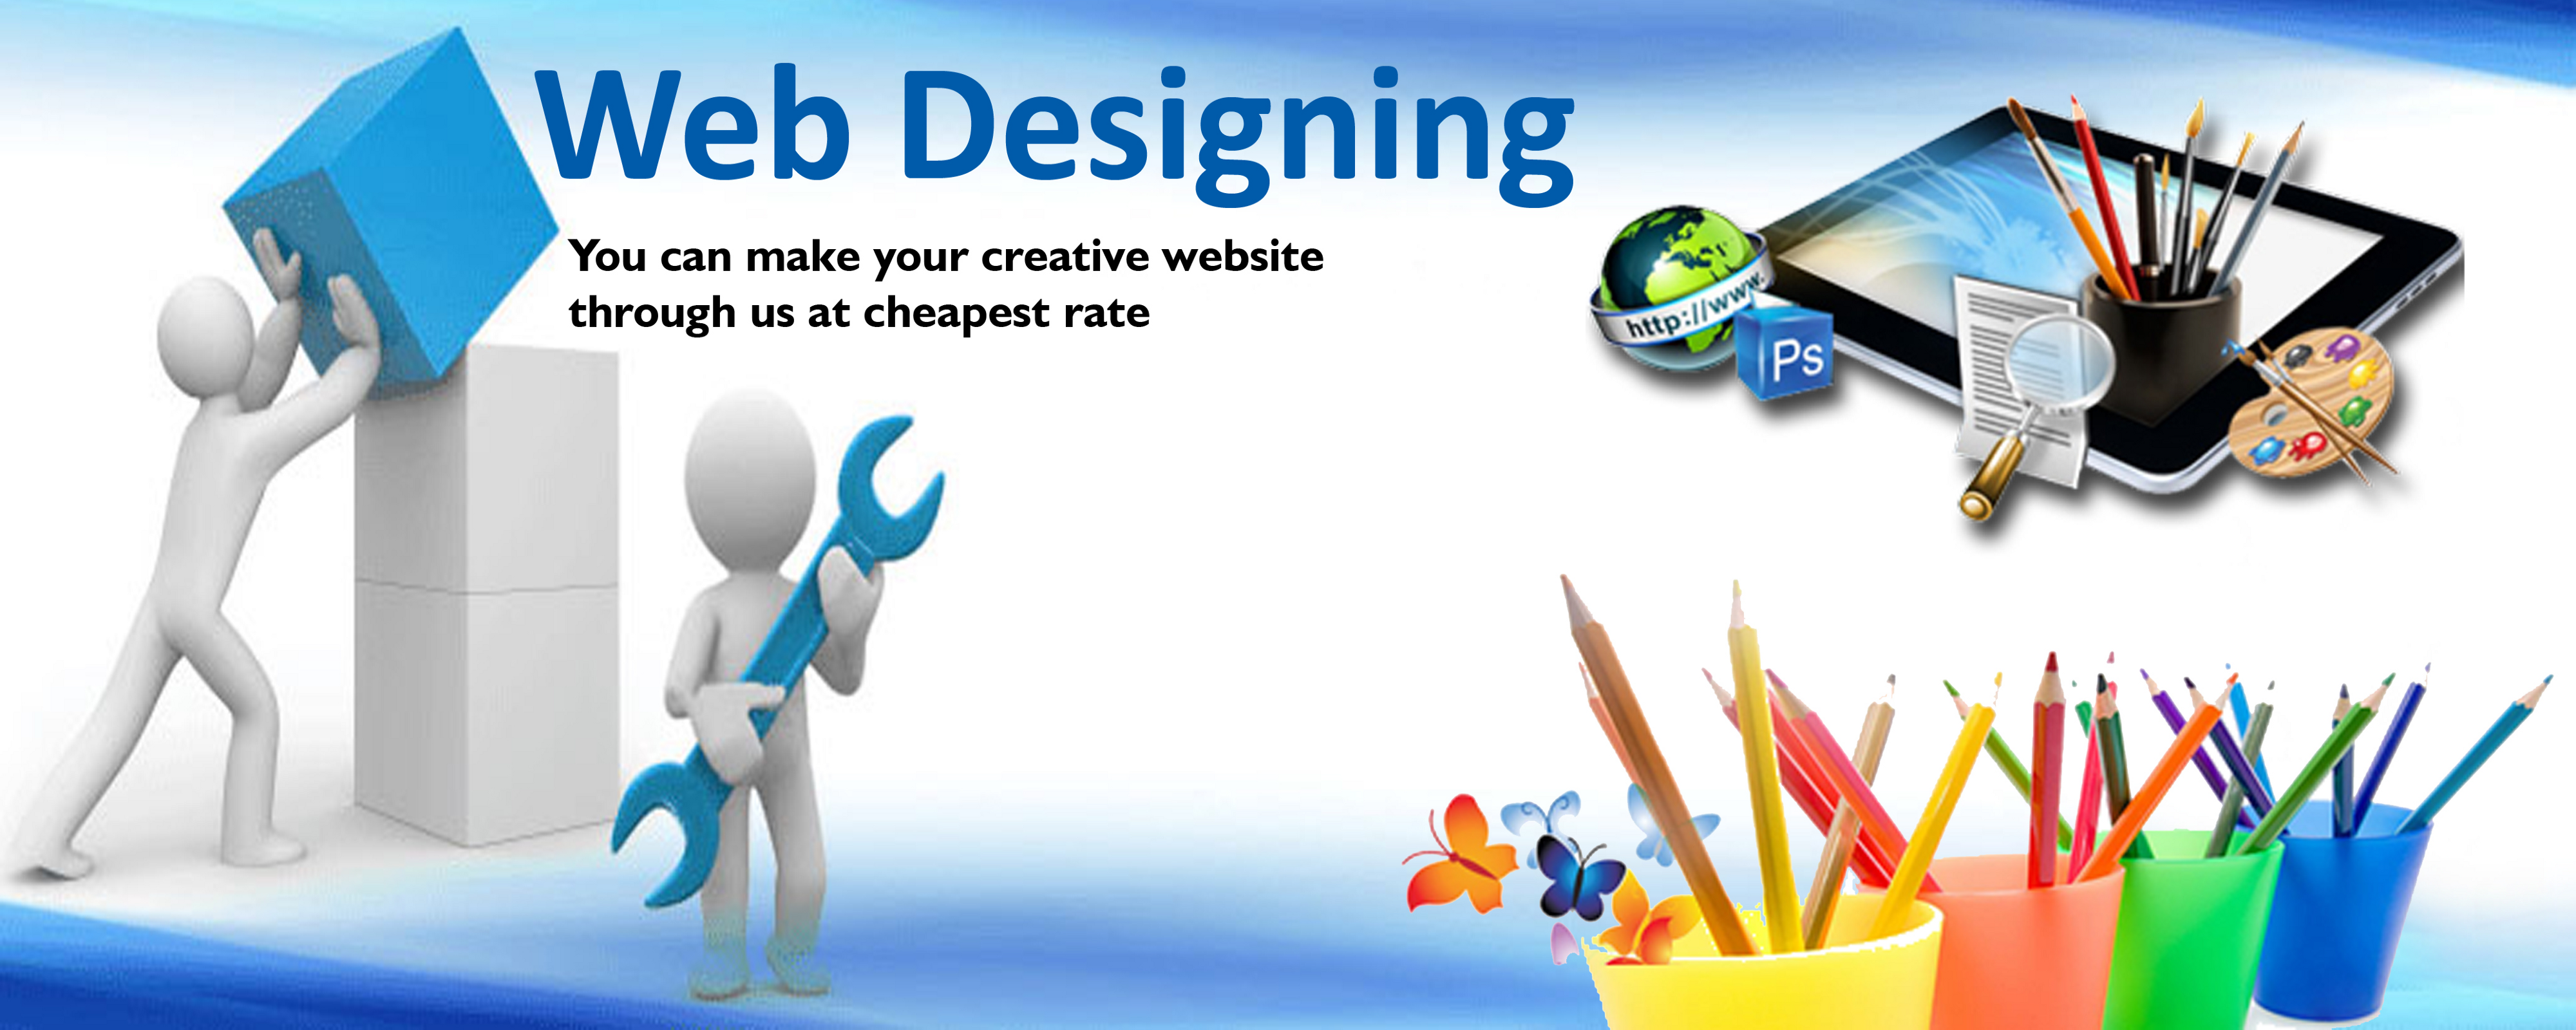 Choosing the best web design company | by Css Infotech | Medium